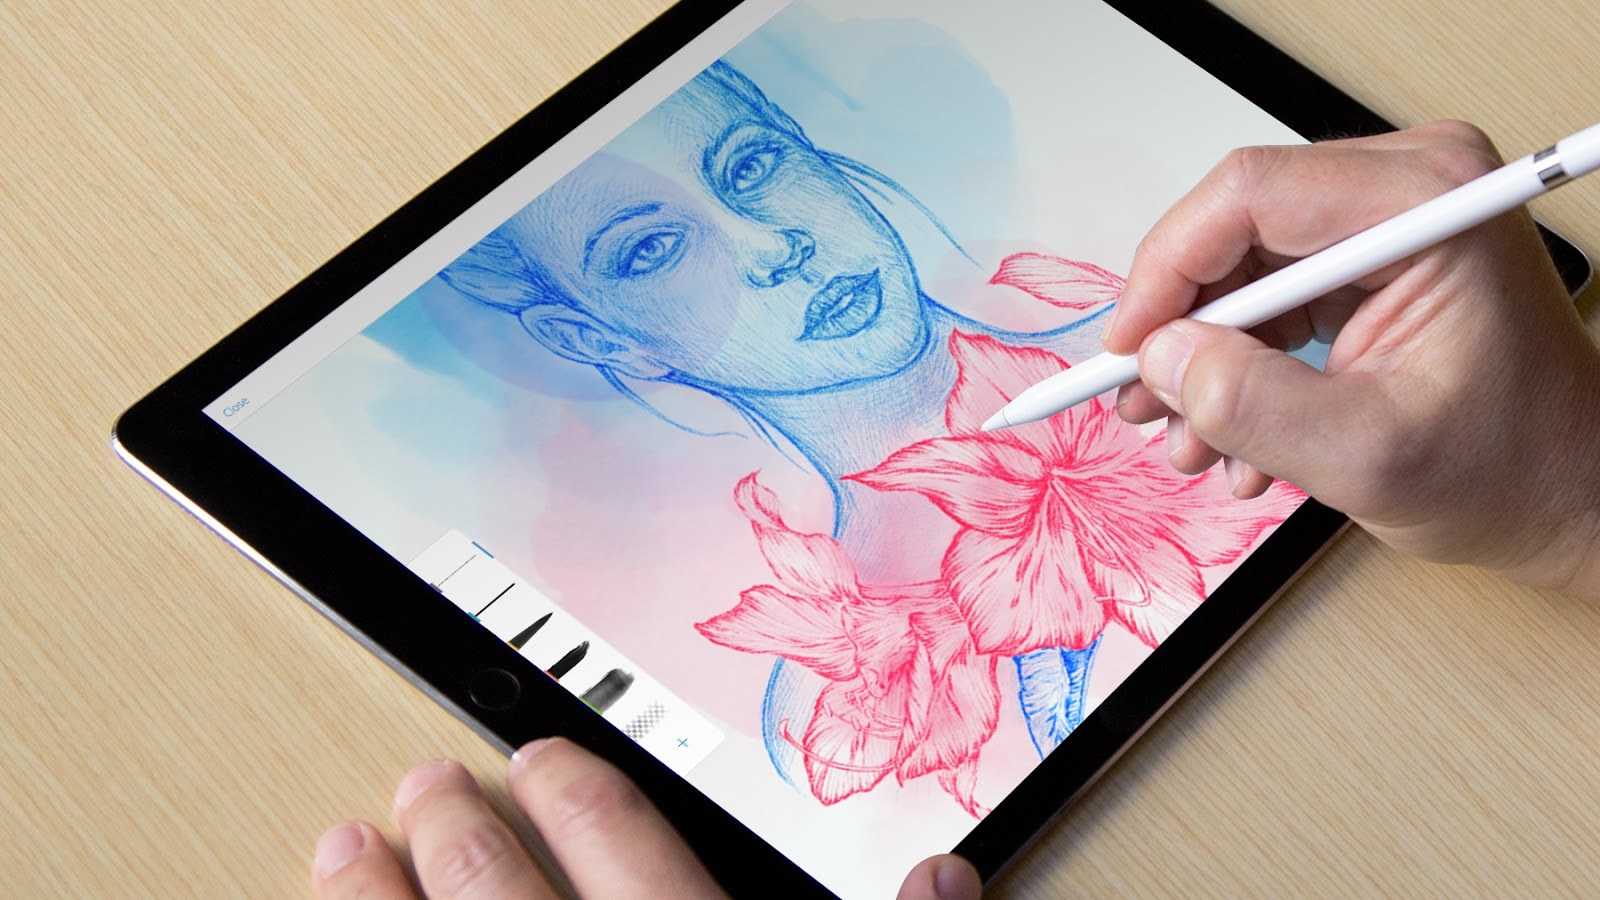 Photo of Apple is launching the full version of Adobe Photoshop on iPad in the coming months